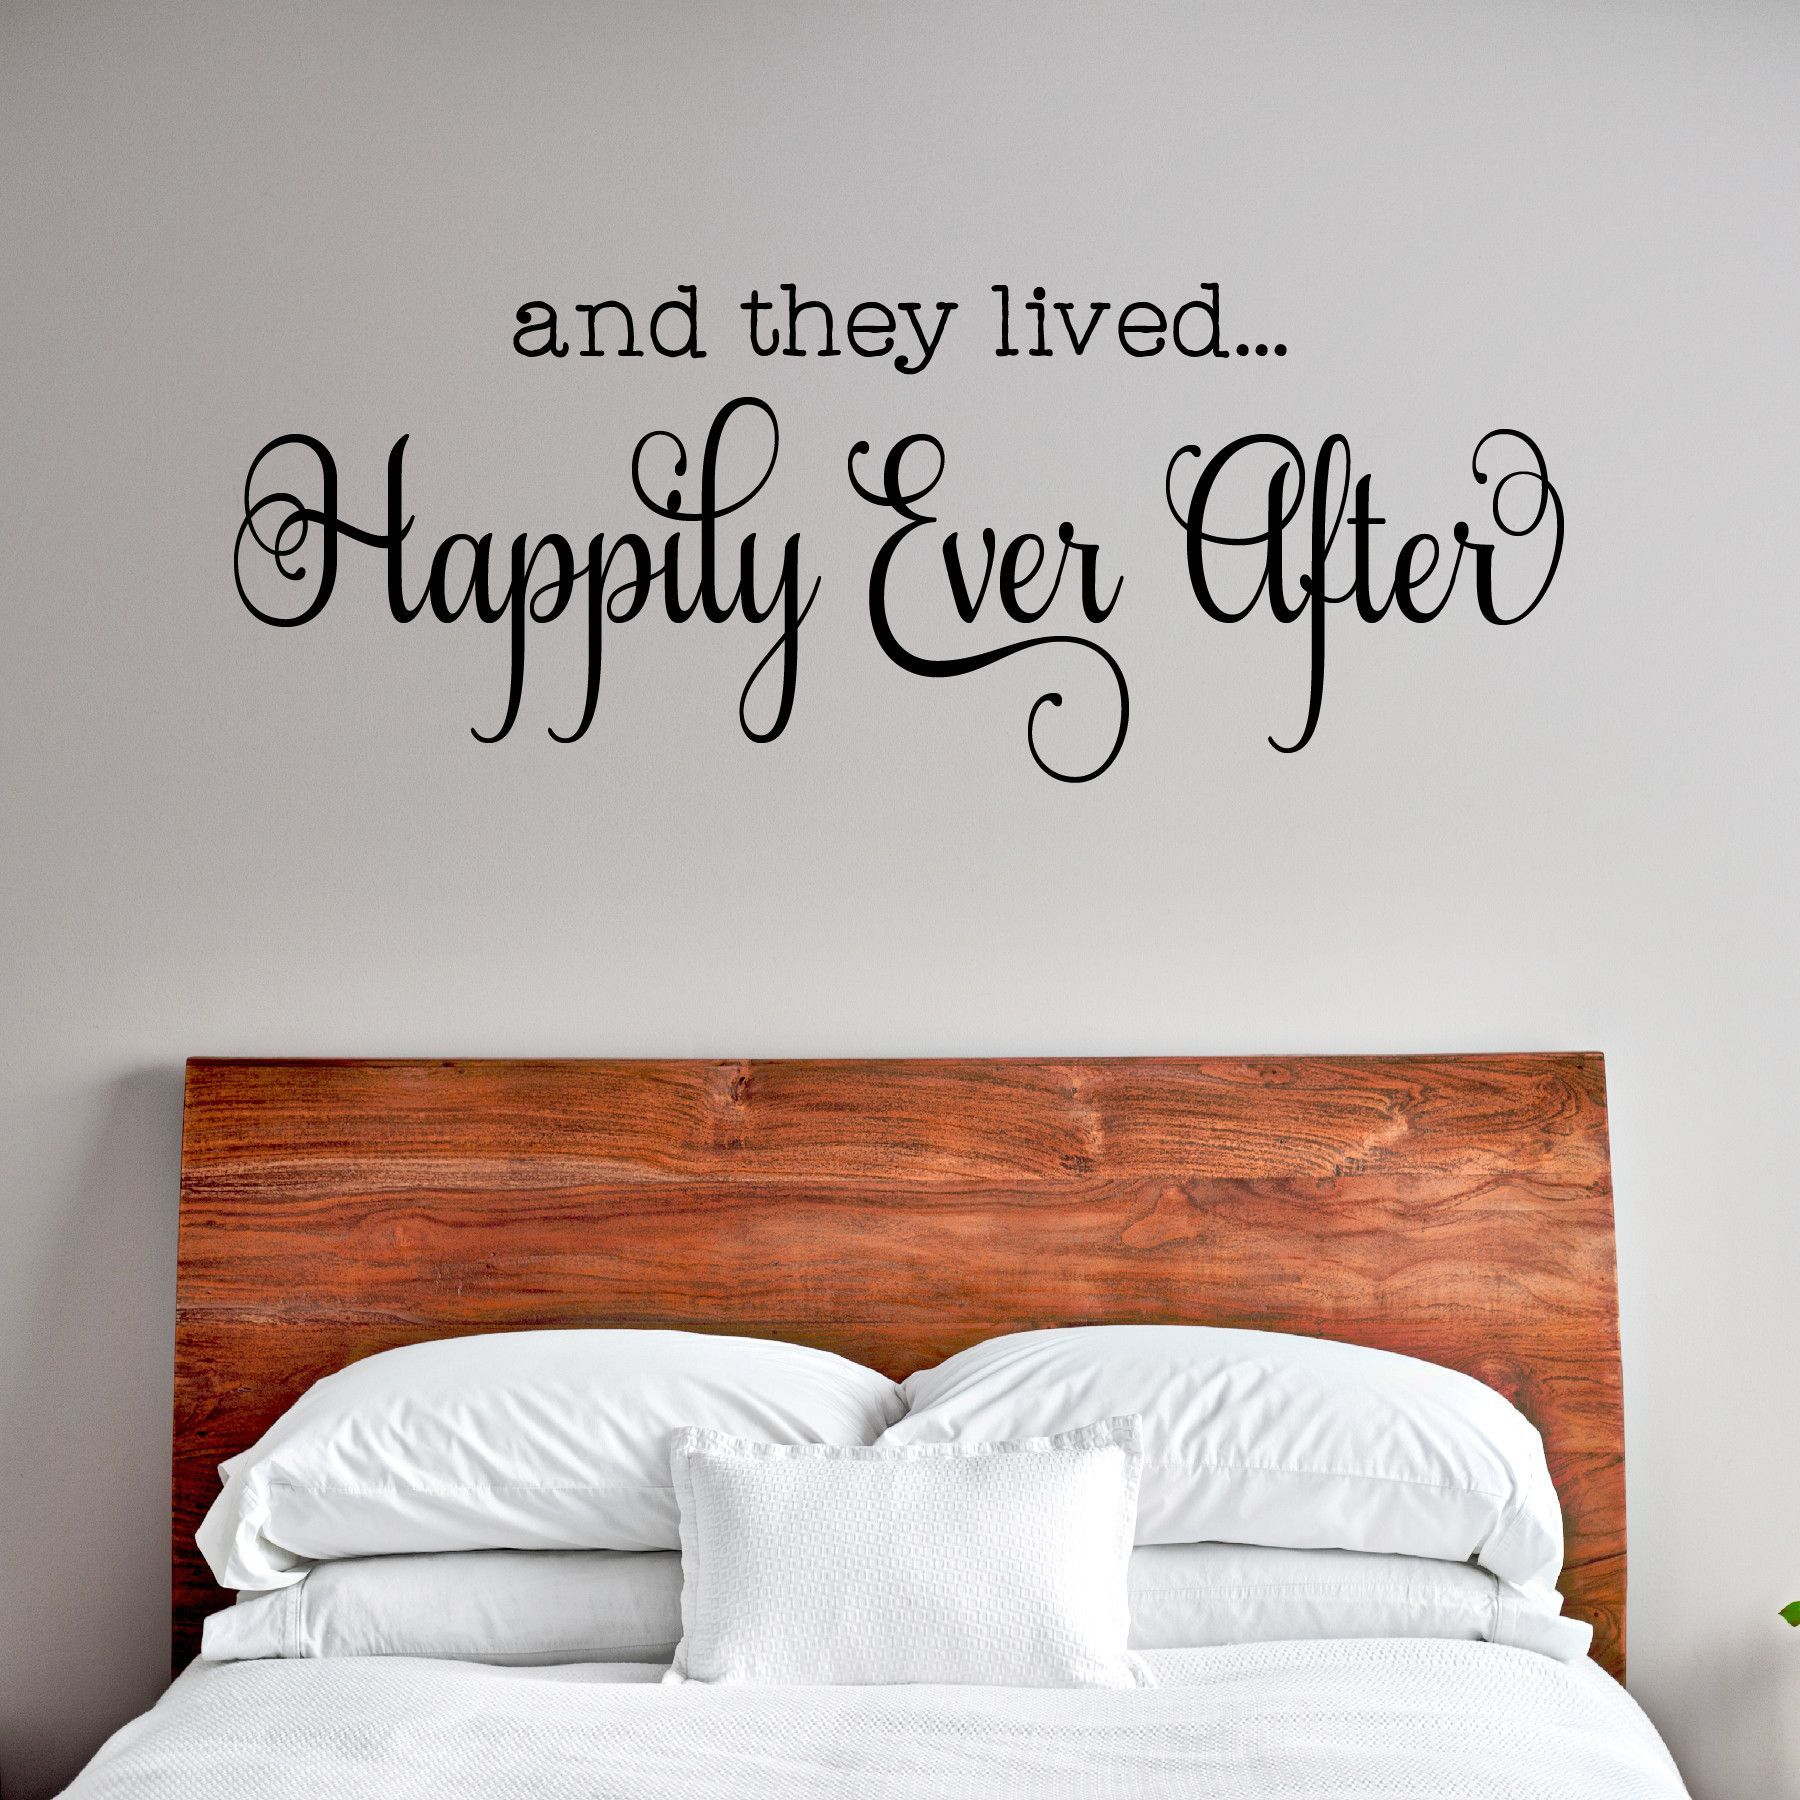 And They Lived Happily Ever After Wall Decal Wall Decals Are Growing In Popularity They Ar Disney Home Decor Wall Quotes Decals Living Room Unique Home Decor